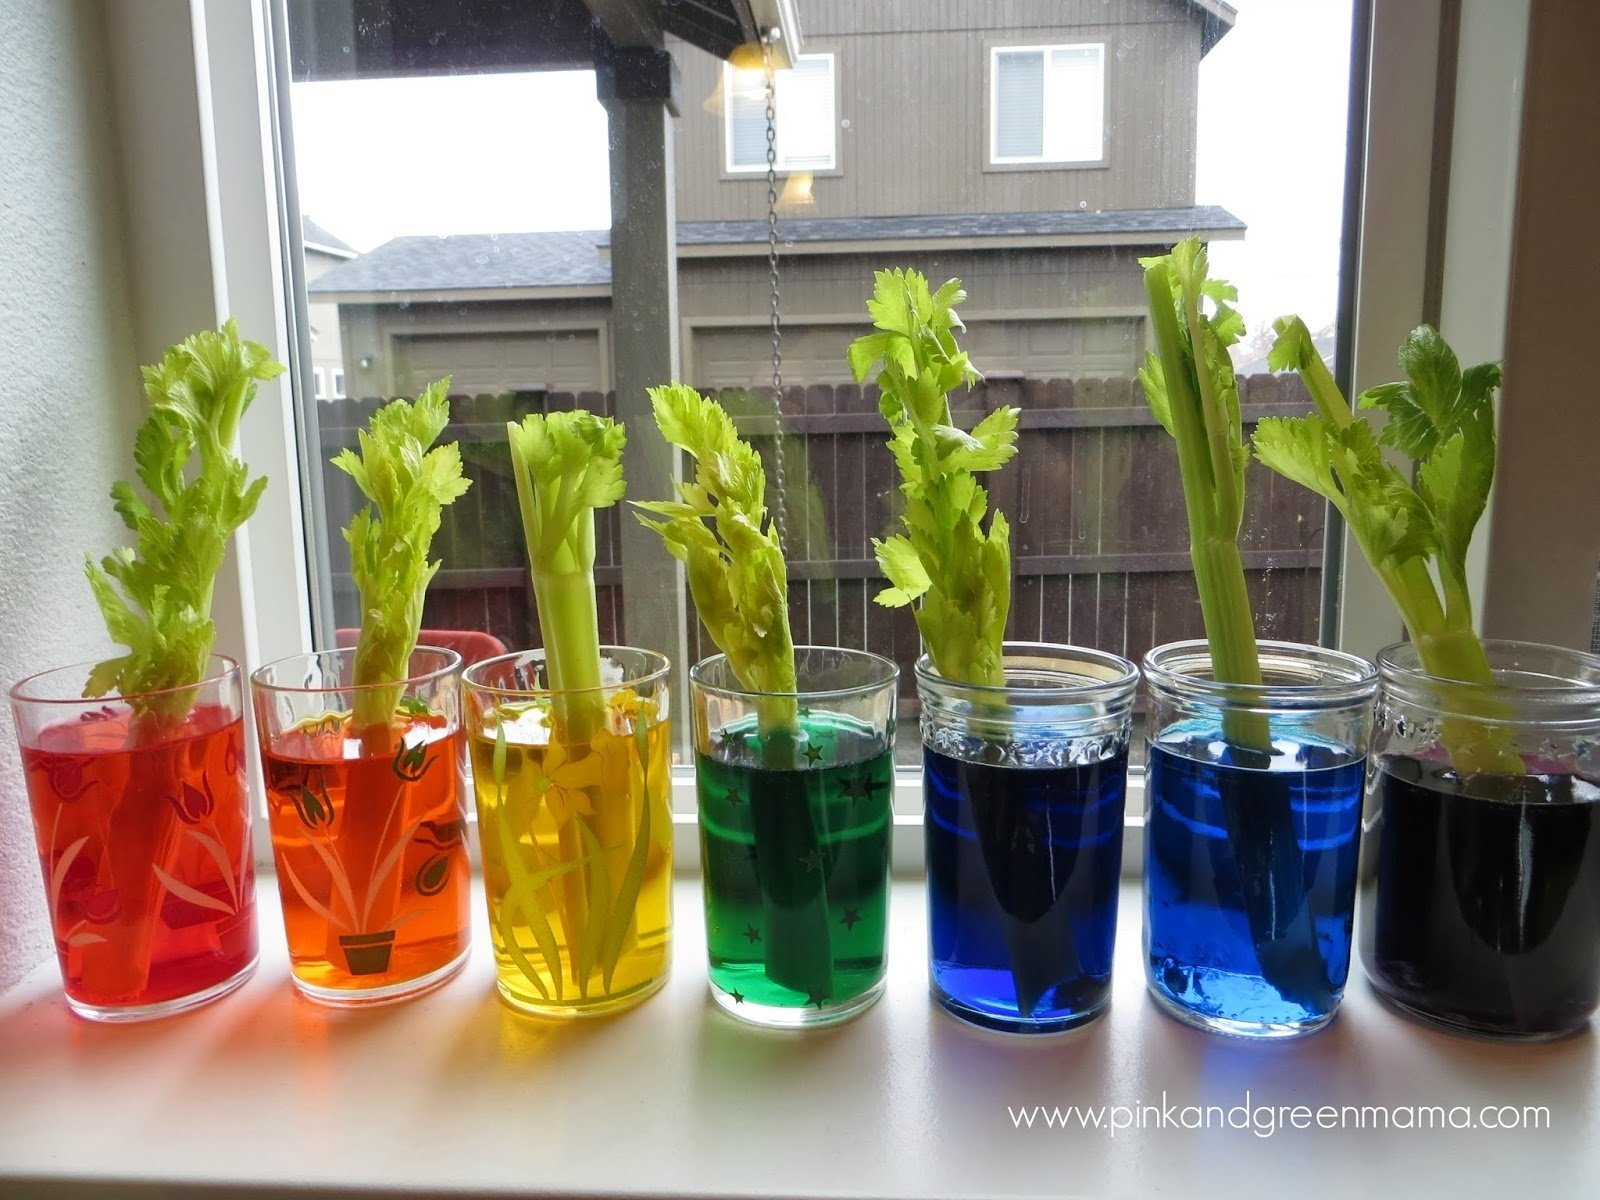 10 Spectacular Science Fair Project Ideas For Kids In 4th